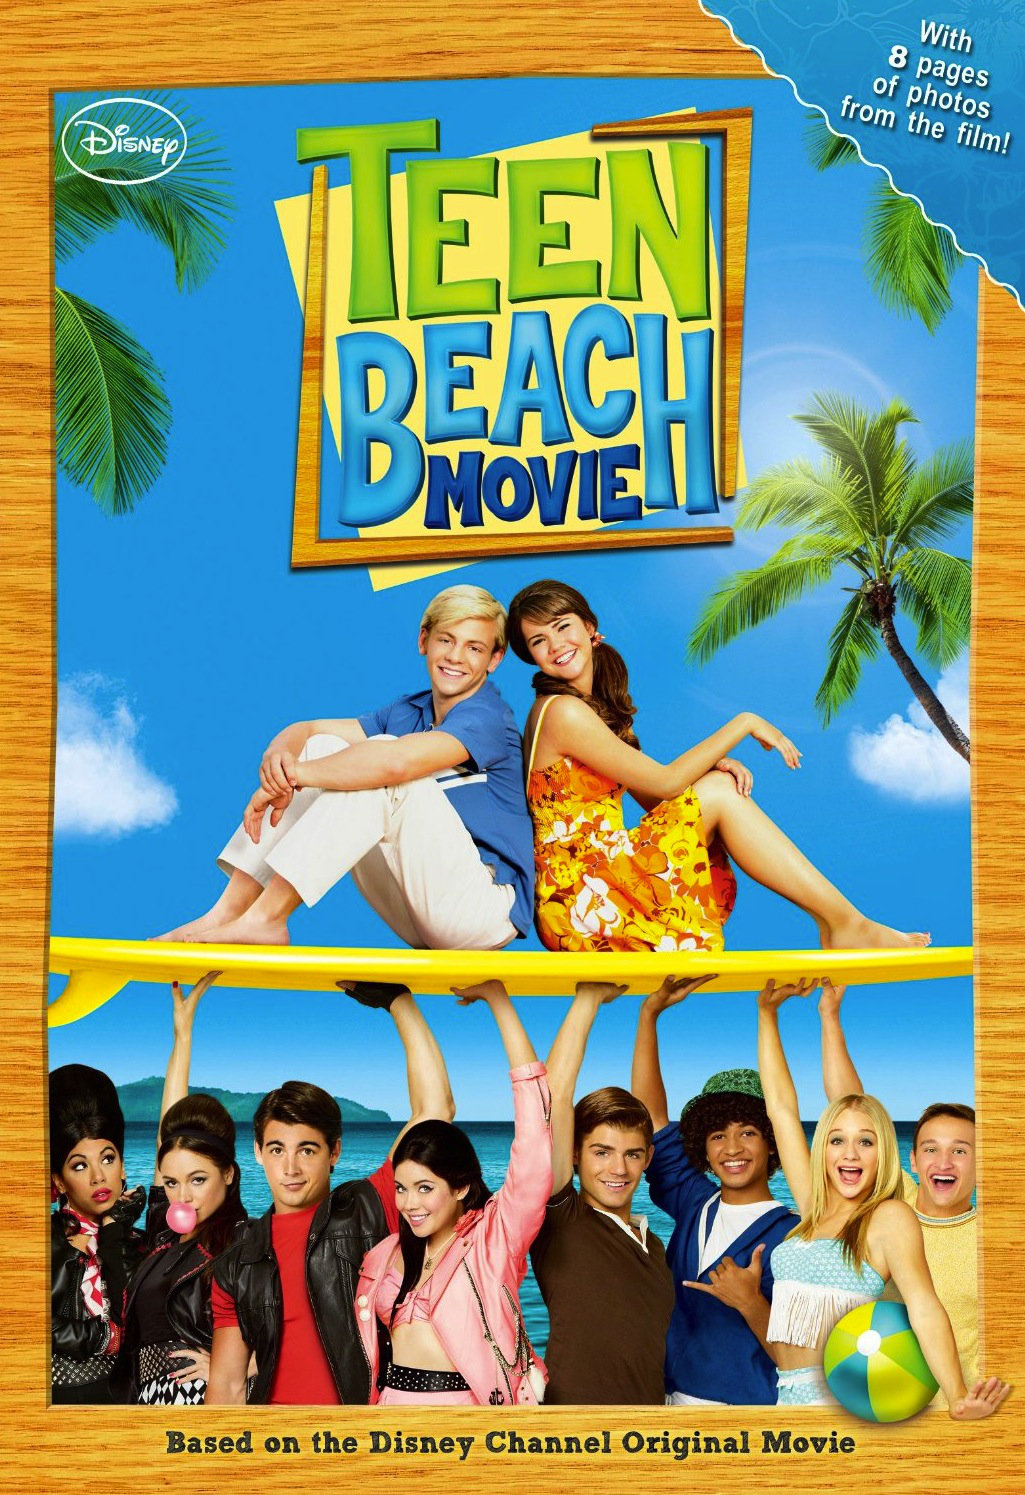 Teen Beach Movie affiche